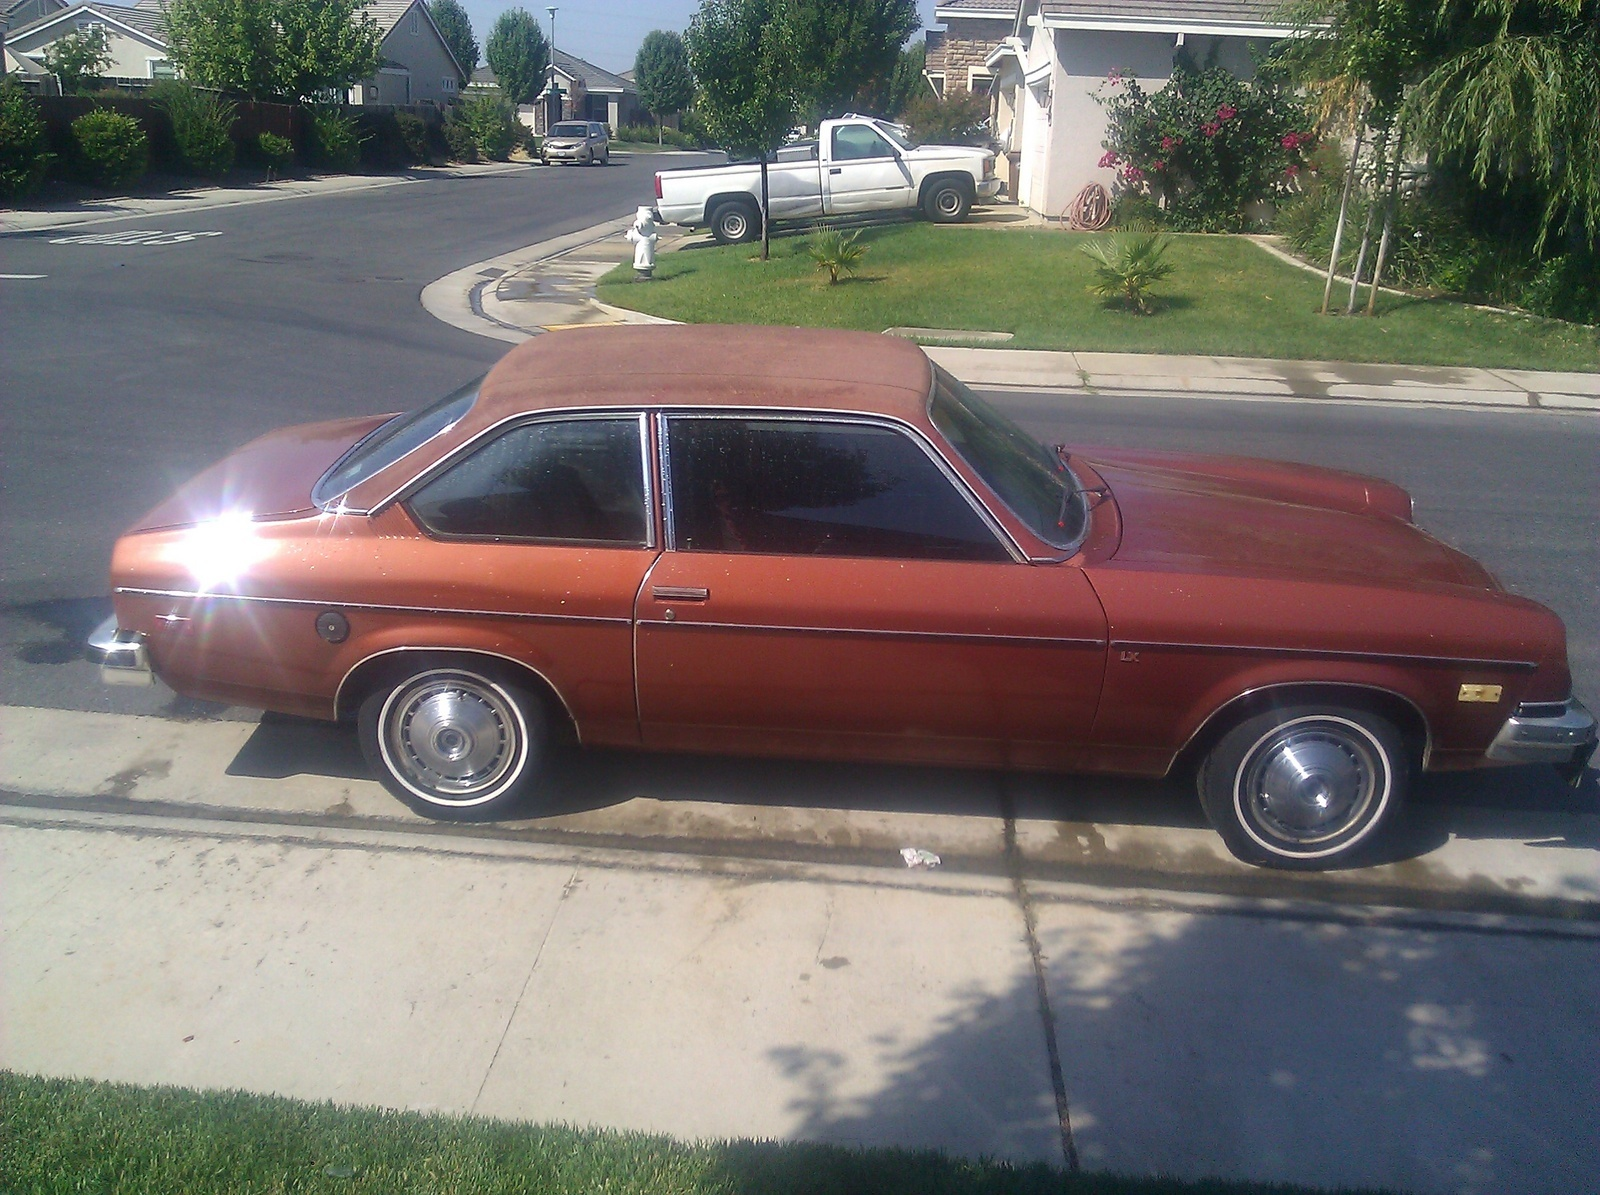 All Chevy 74 chevy : Chevrolet Vega Questions - Im selling my Grandparents 1974 Chevy ...